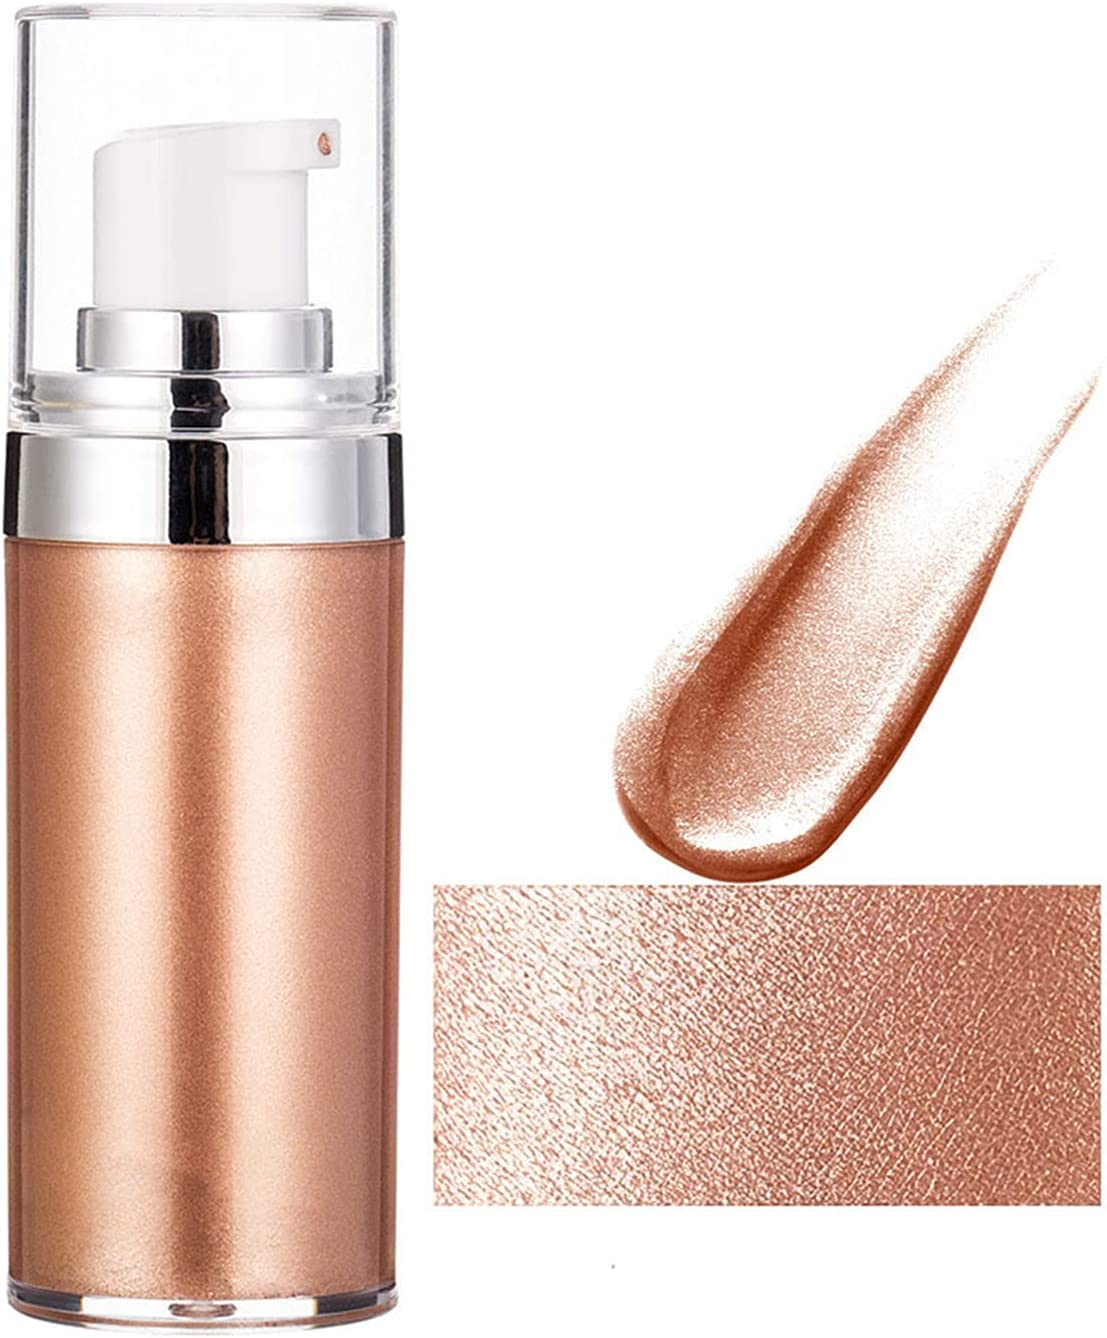 PPJSKS Hydrating Ranking TOP9 Body Shimmer Inventory cleanup selling sale Face Illuminator Glow Liquid